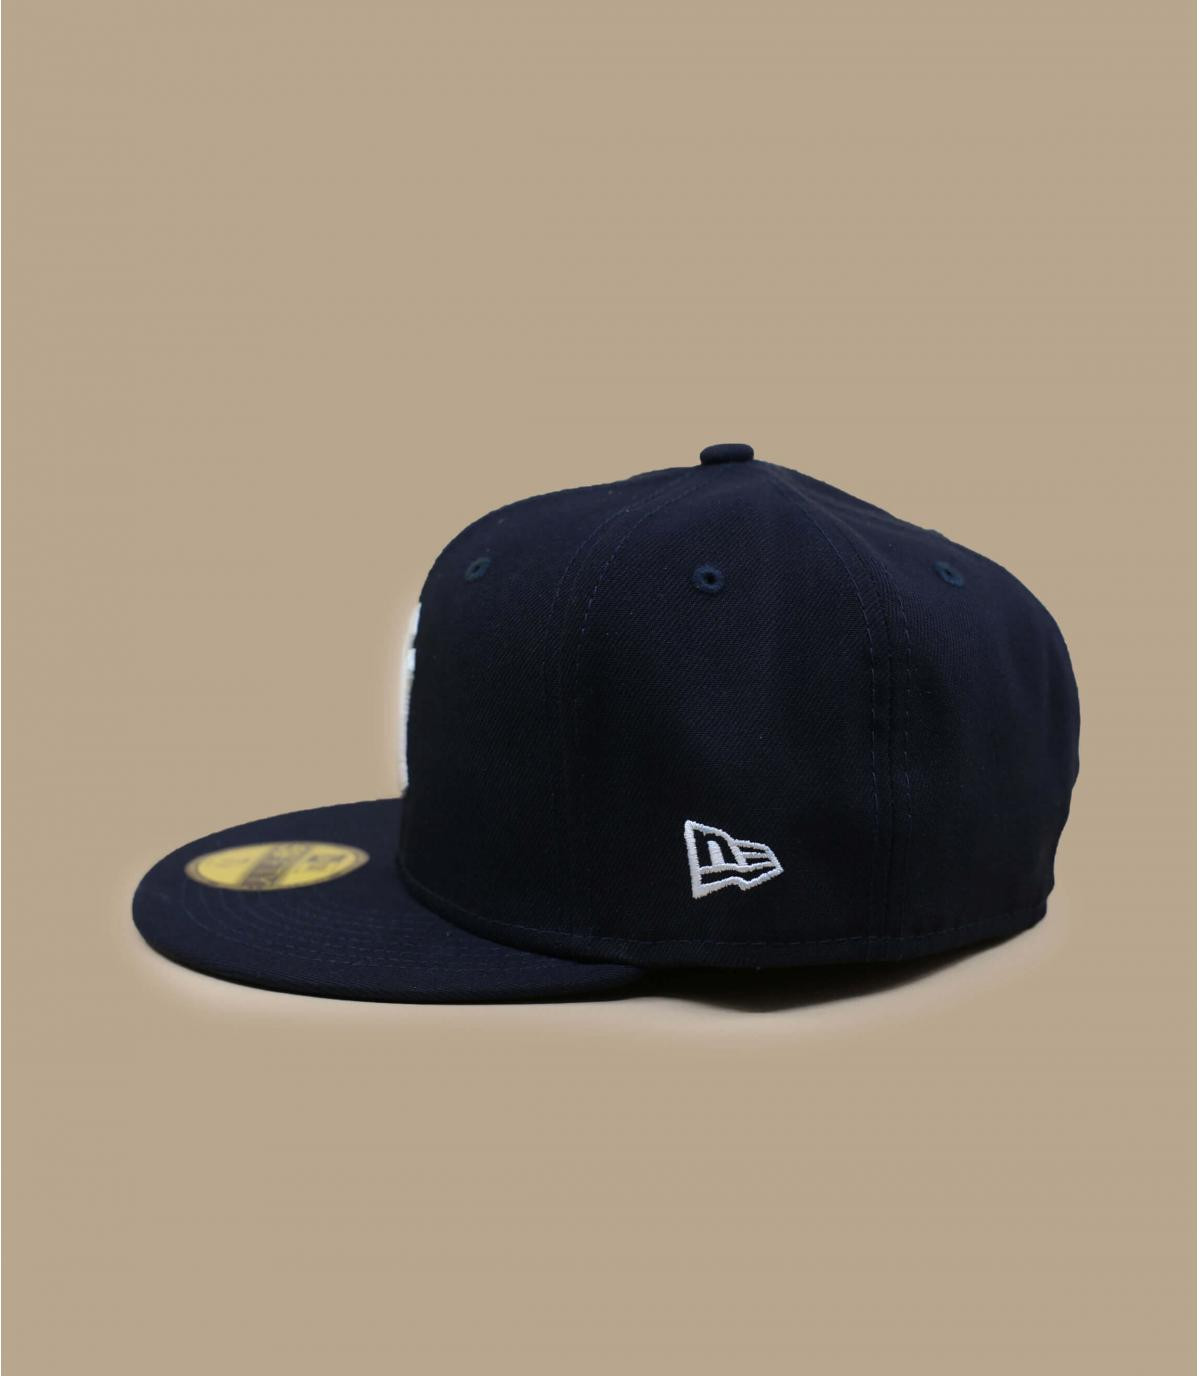 Détails MLB AC Perf 5950 New York Yankees - image 2